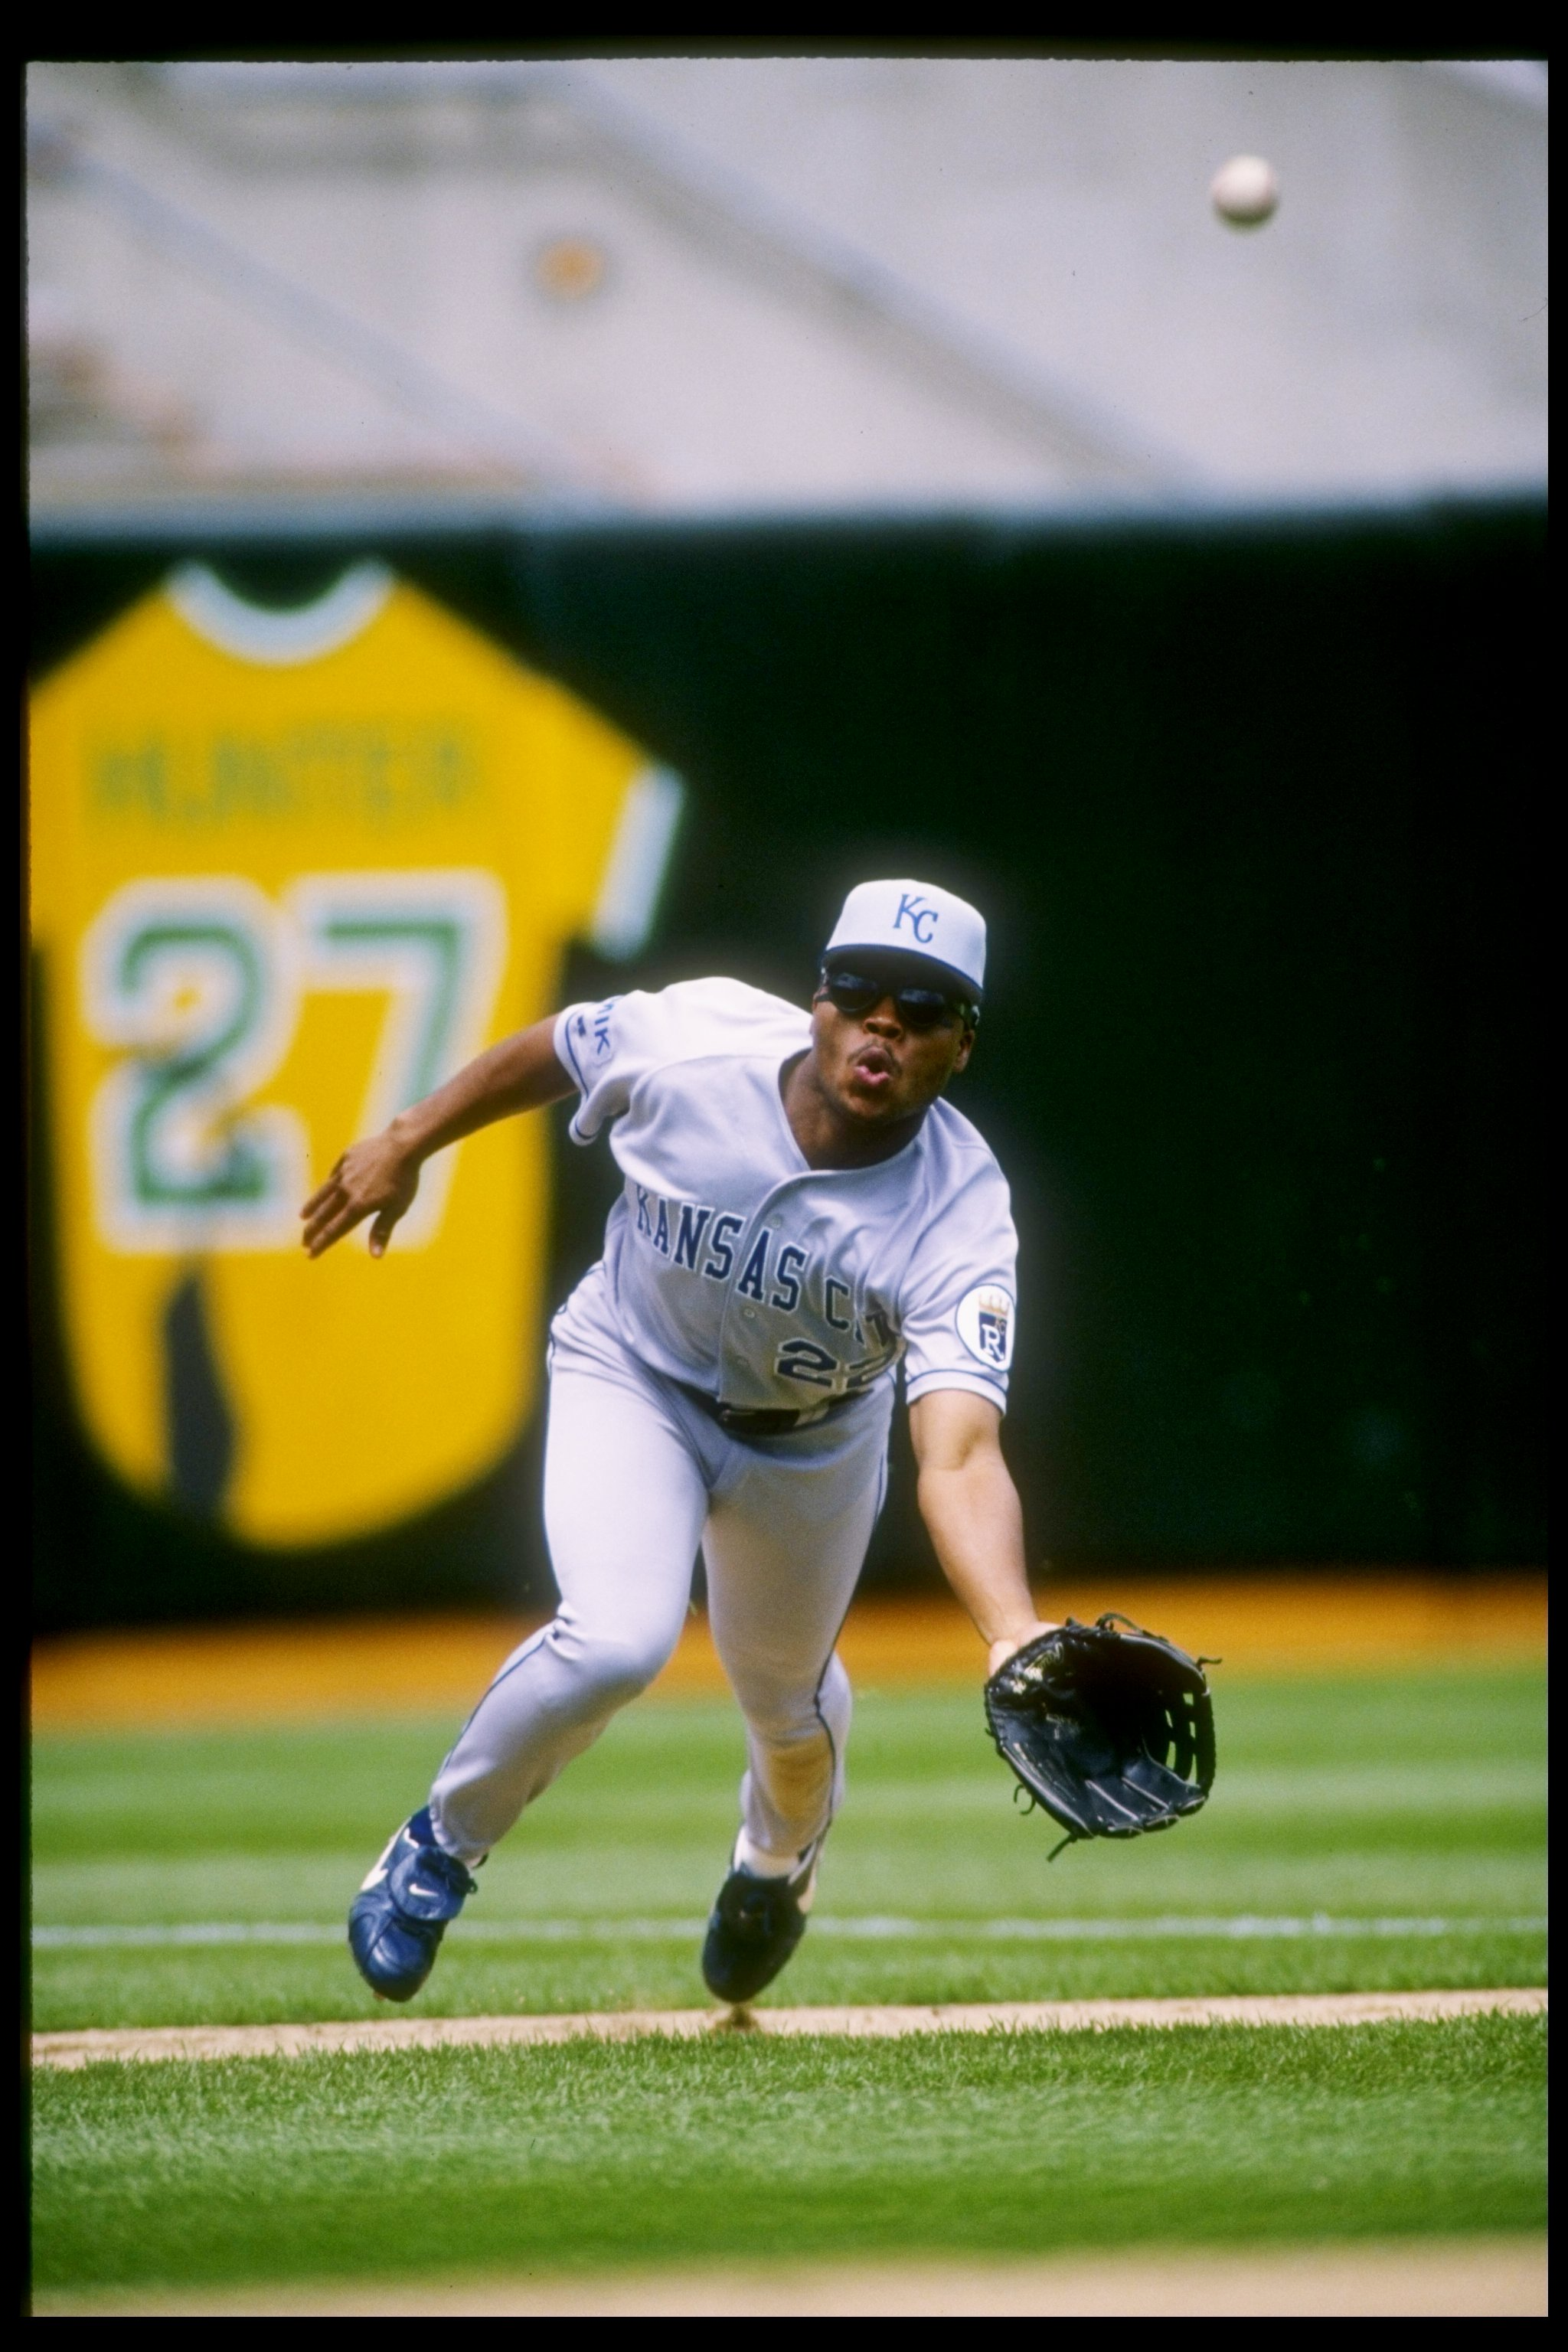 half off c8b1b 4a002 Throwback uniforms we want to see in the American League ...